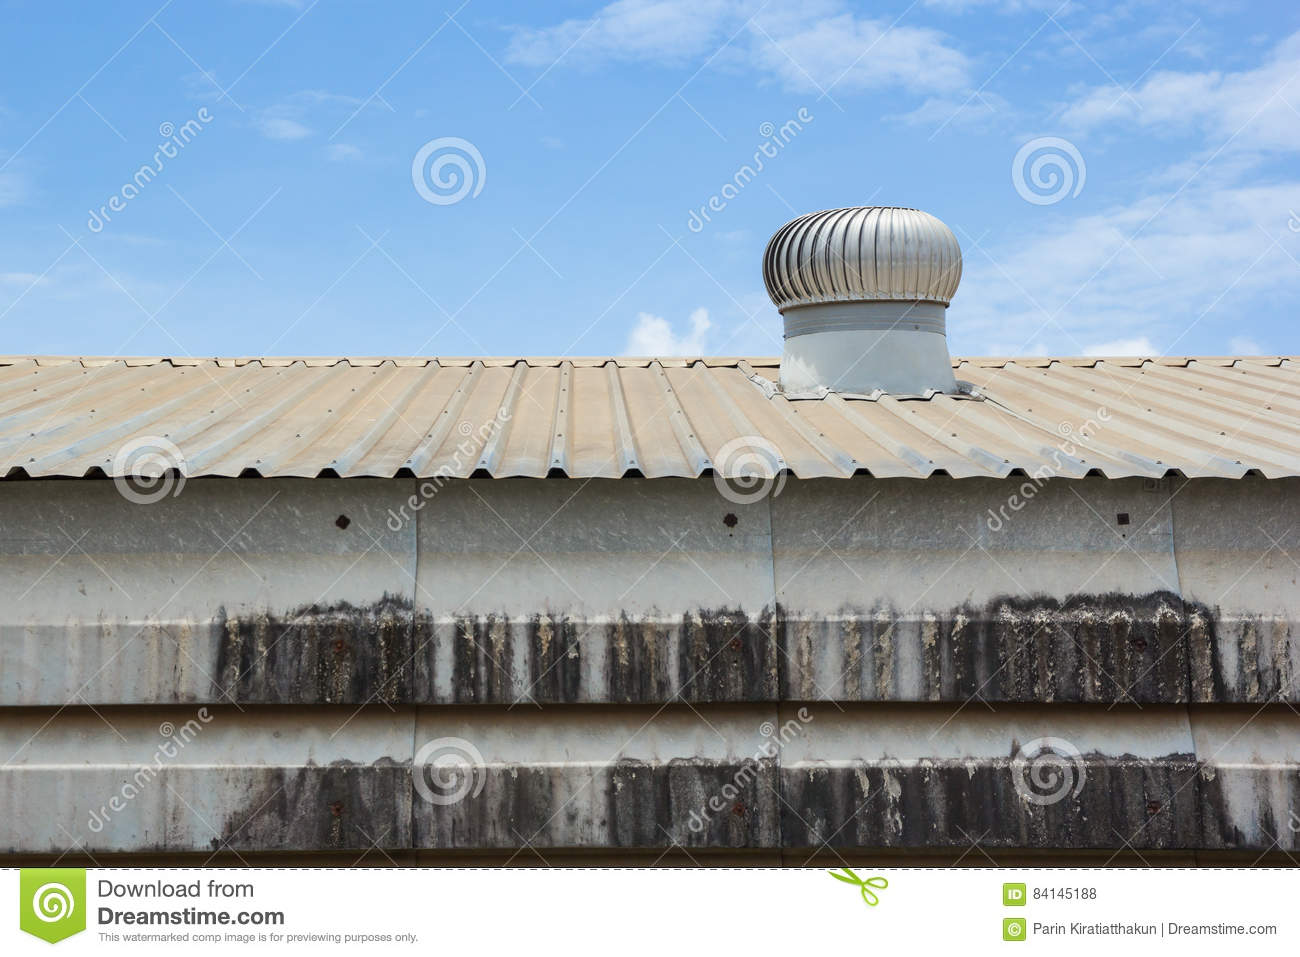 ventilation system for heat control of factory stock photo image